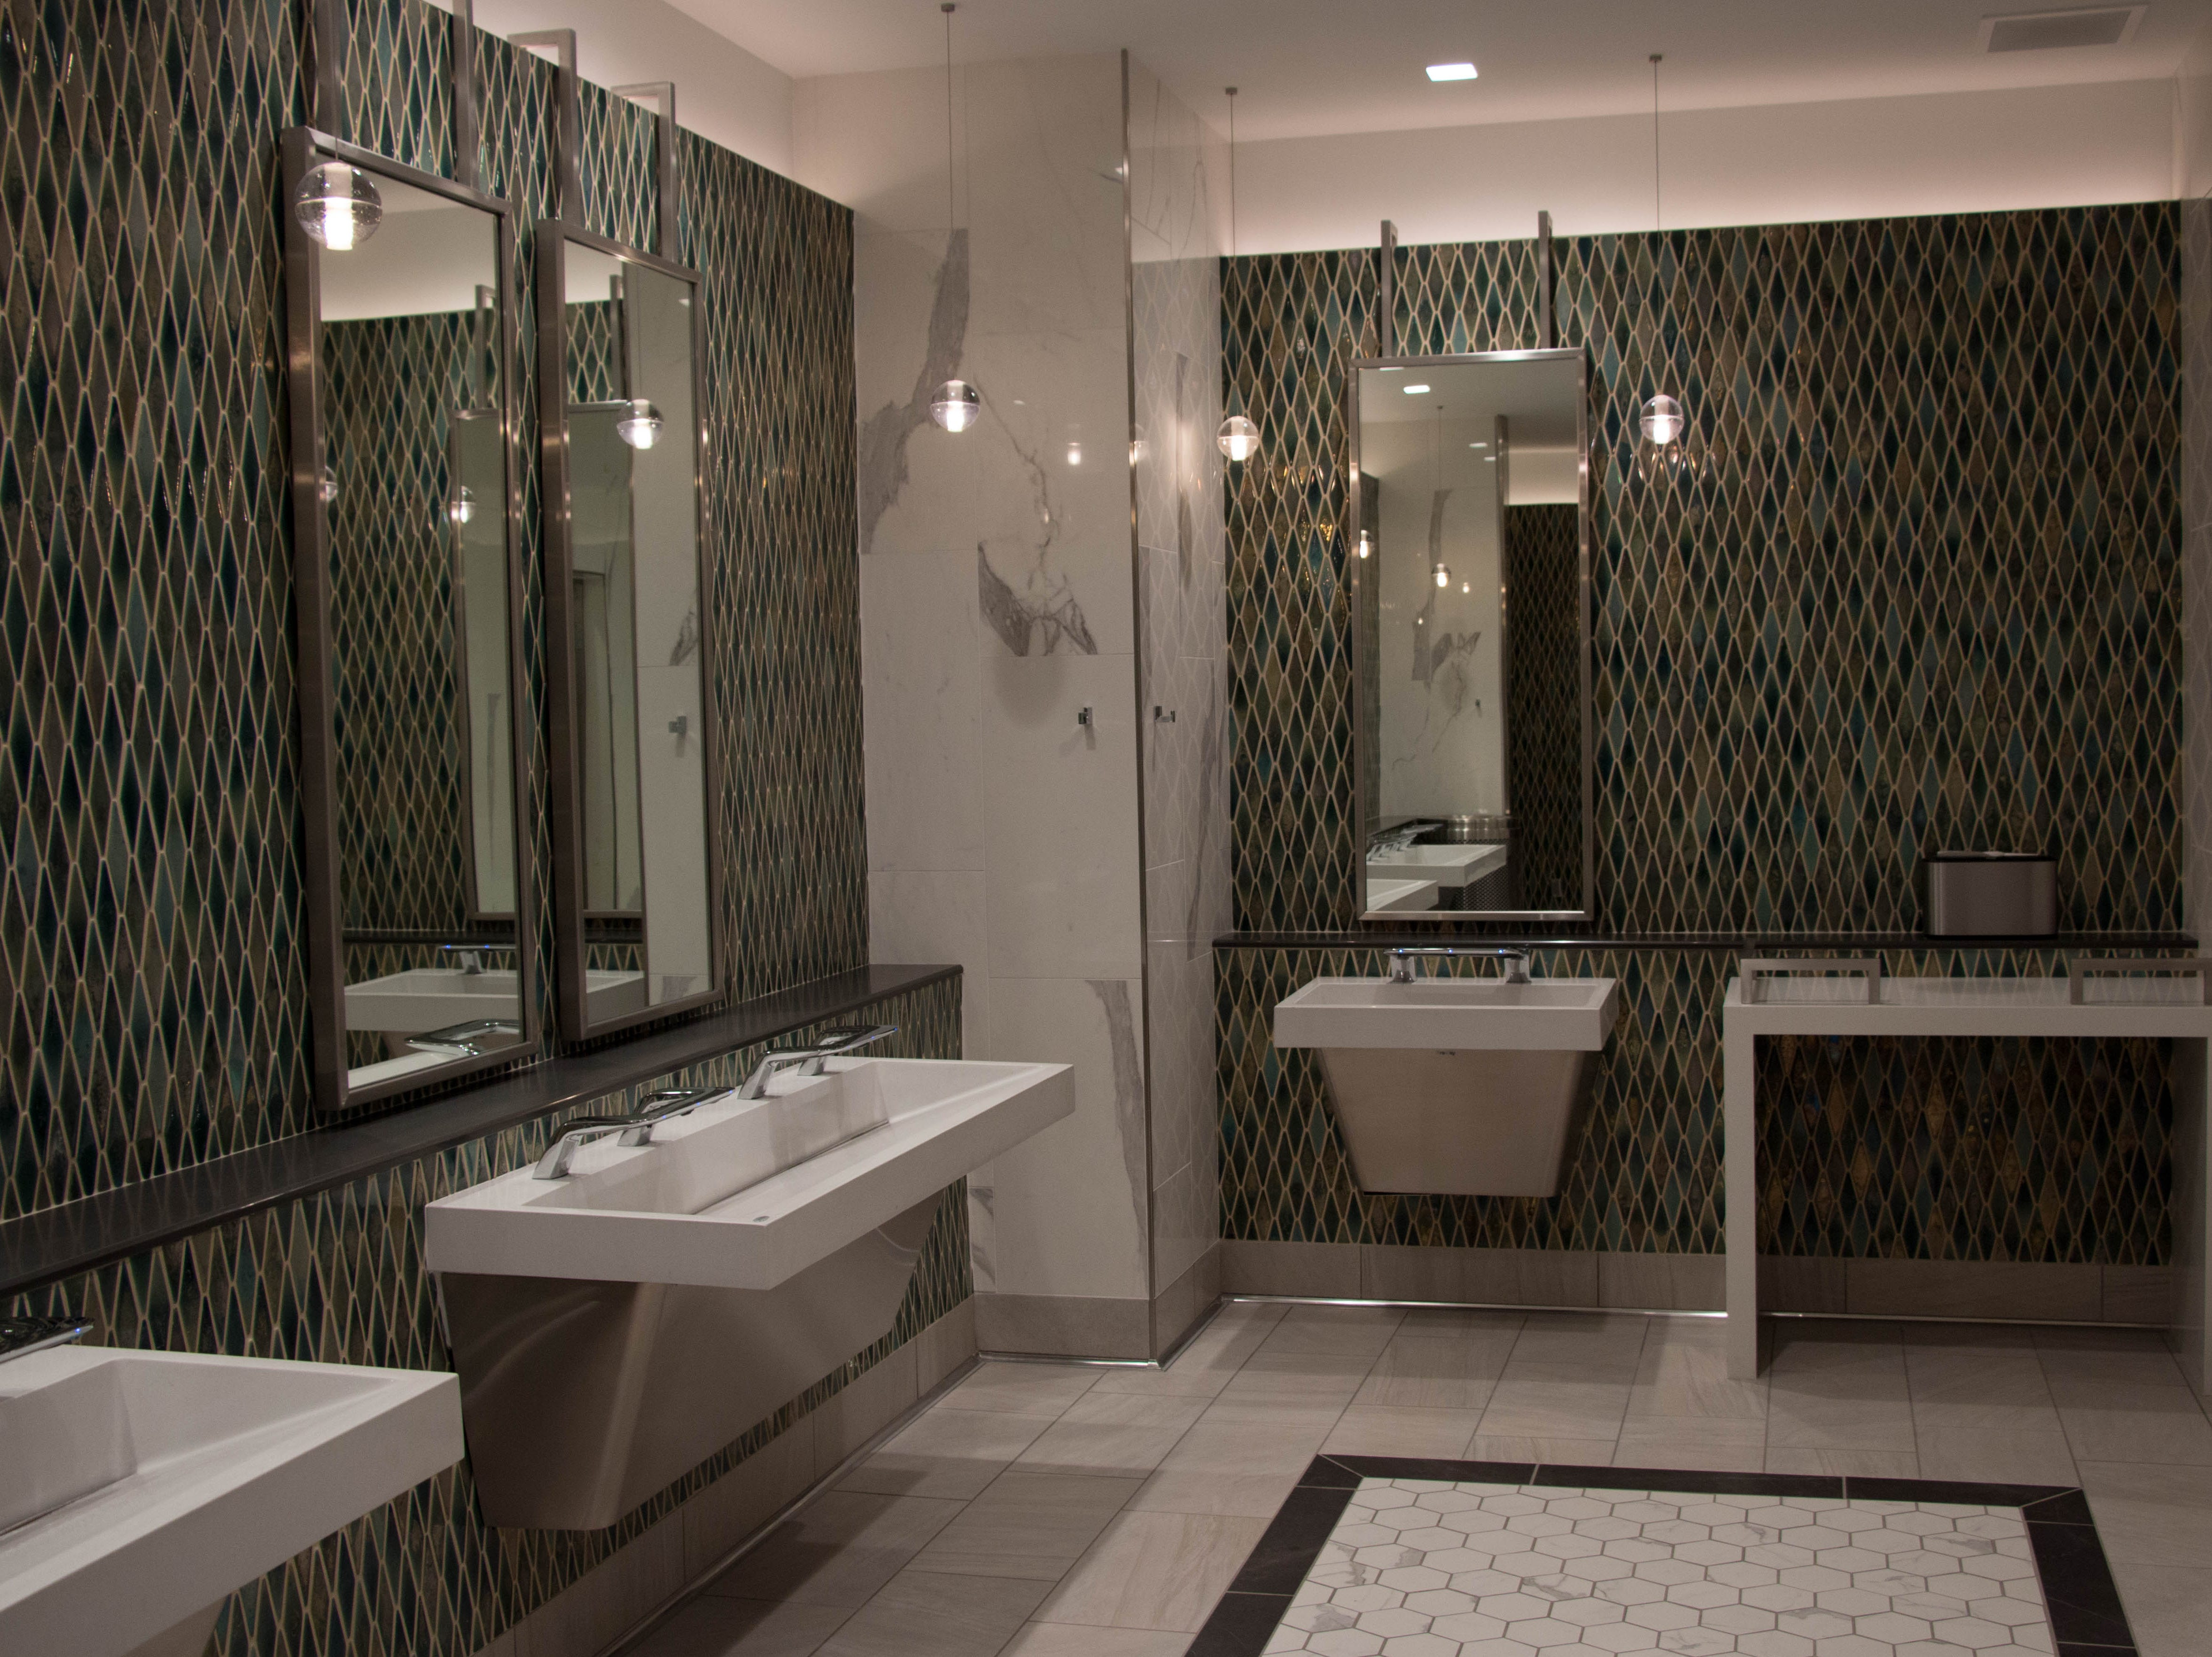 The men's bathroom in the updated luxury wing feature handpainted tile, 3-in-1 sinks and a changing table.